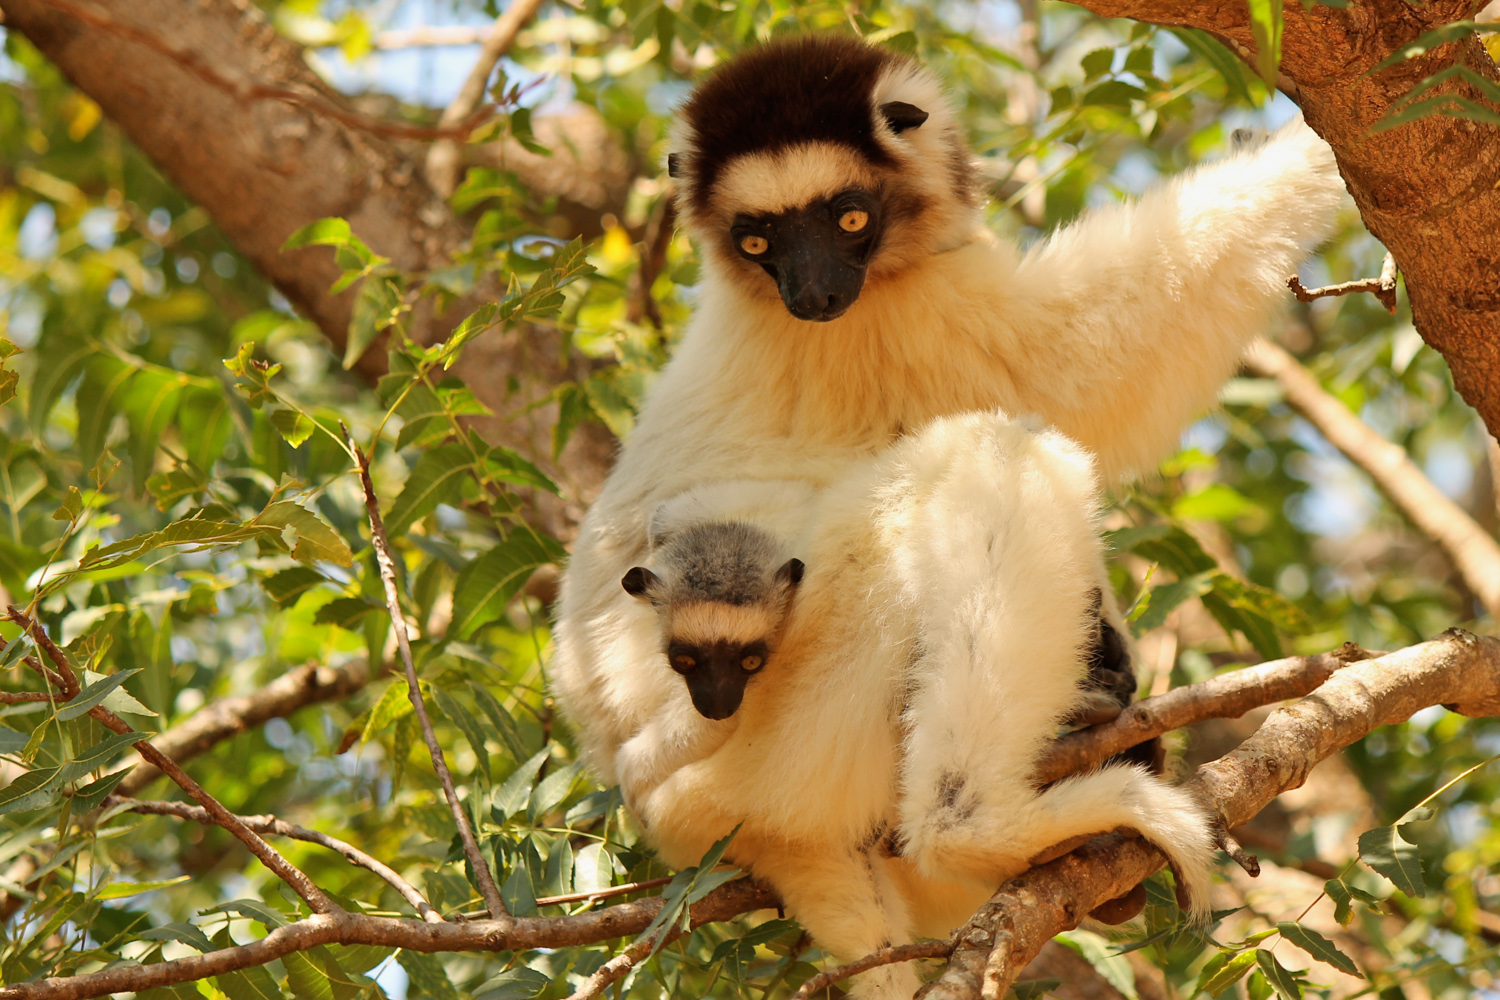 Verreaux's sifaka with baby in the Berenty Reserve.